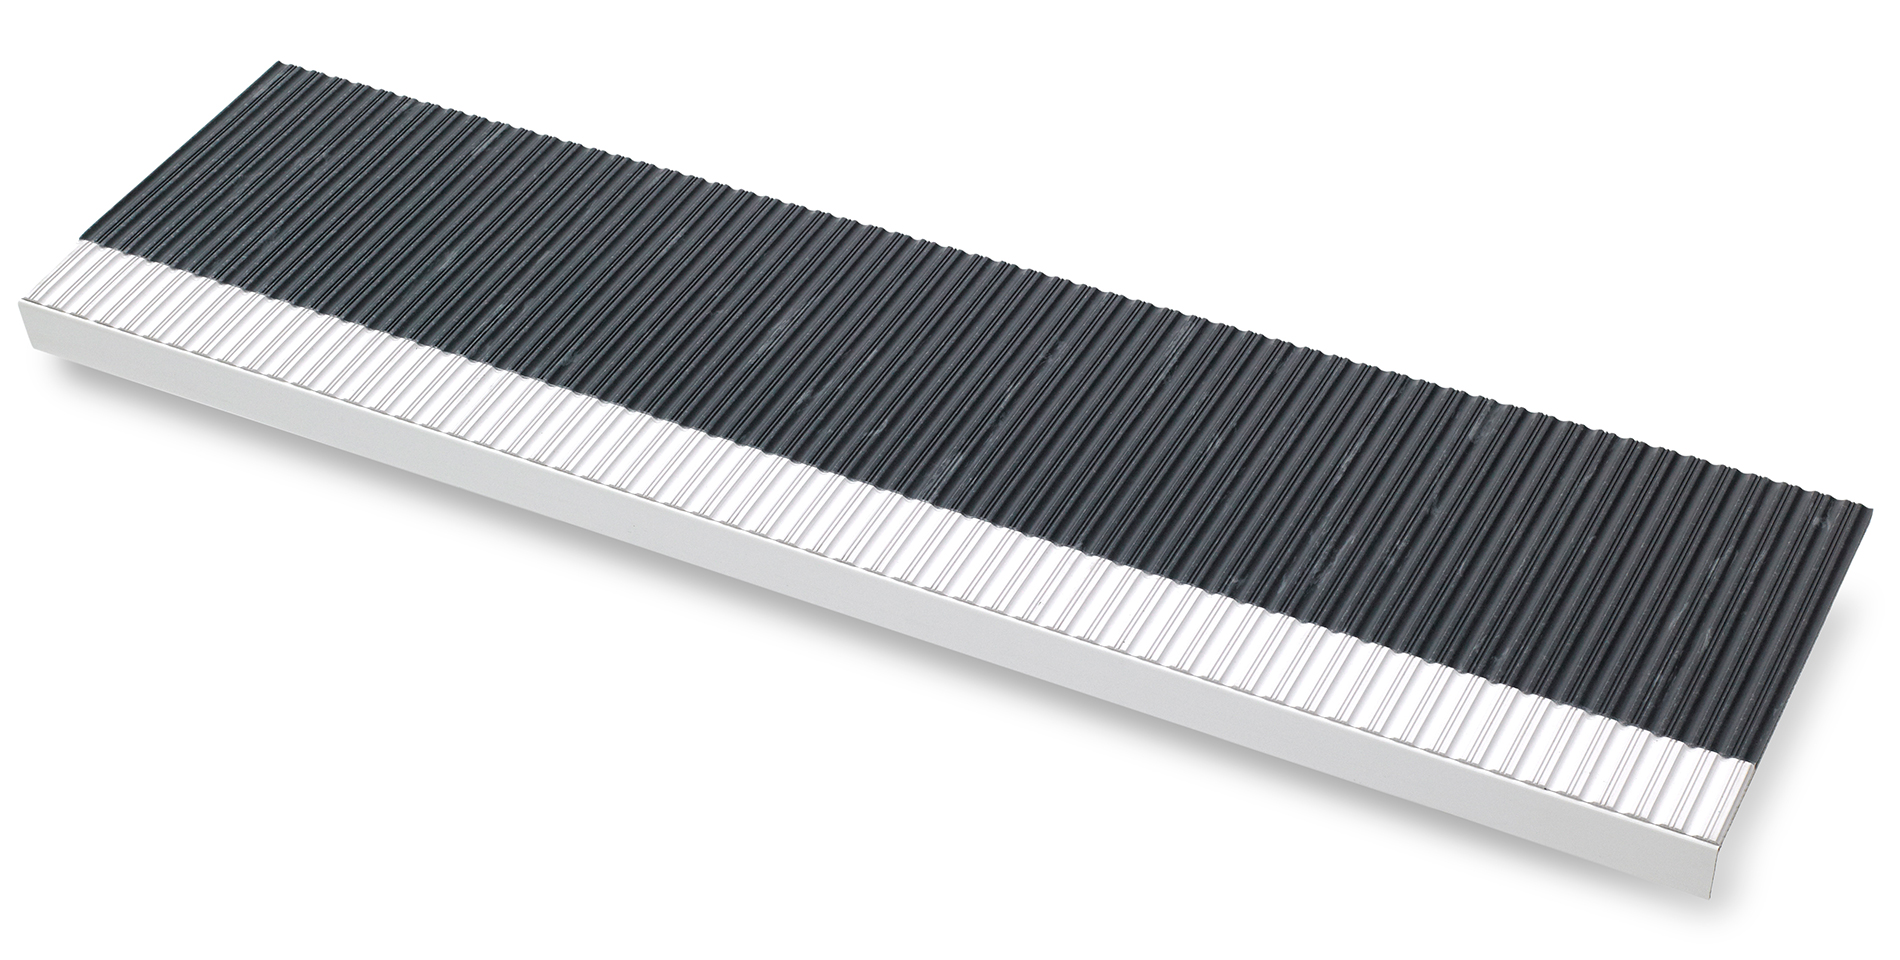 Step-covering in black, ribbed with white nosing